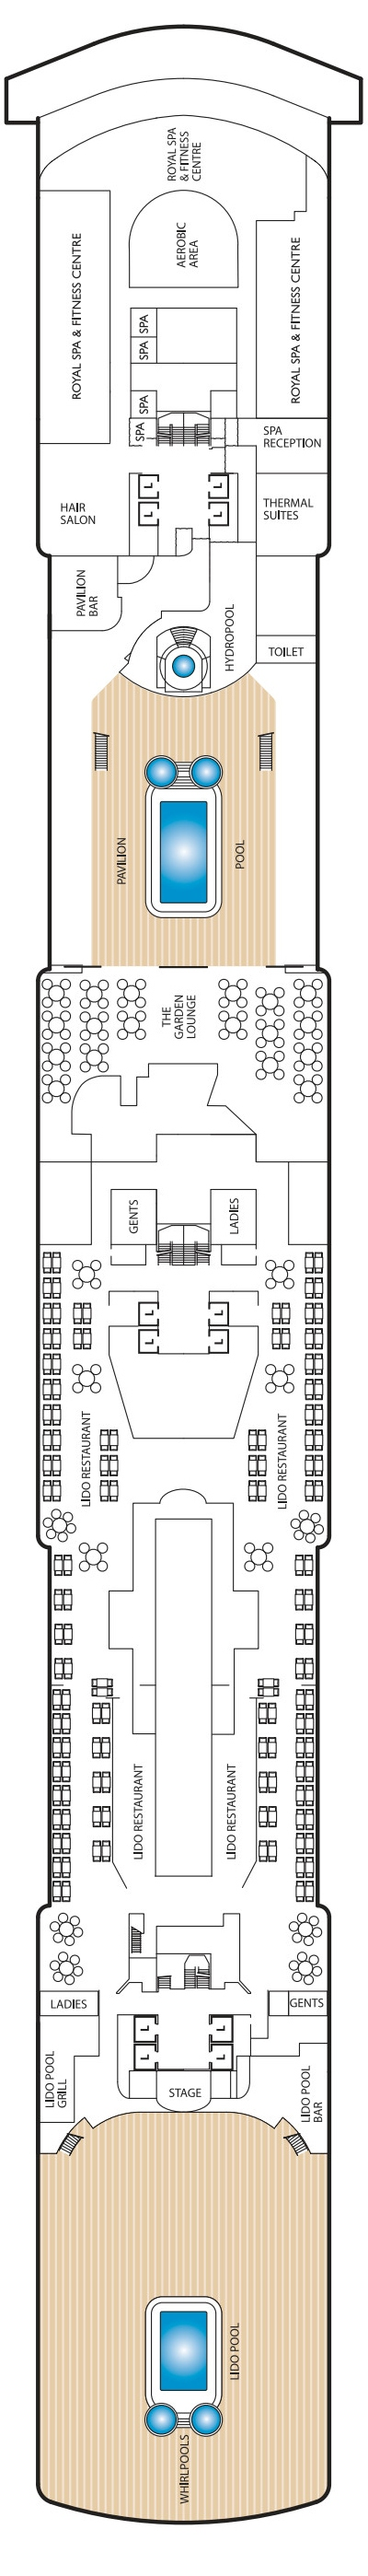 Queen Elizabeth Deck 9 layout